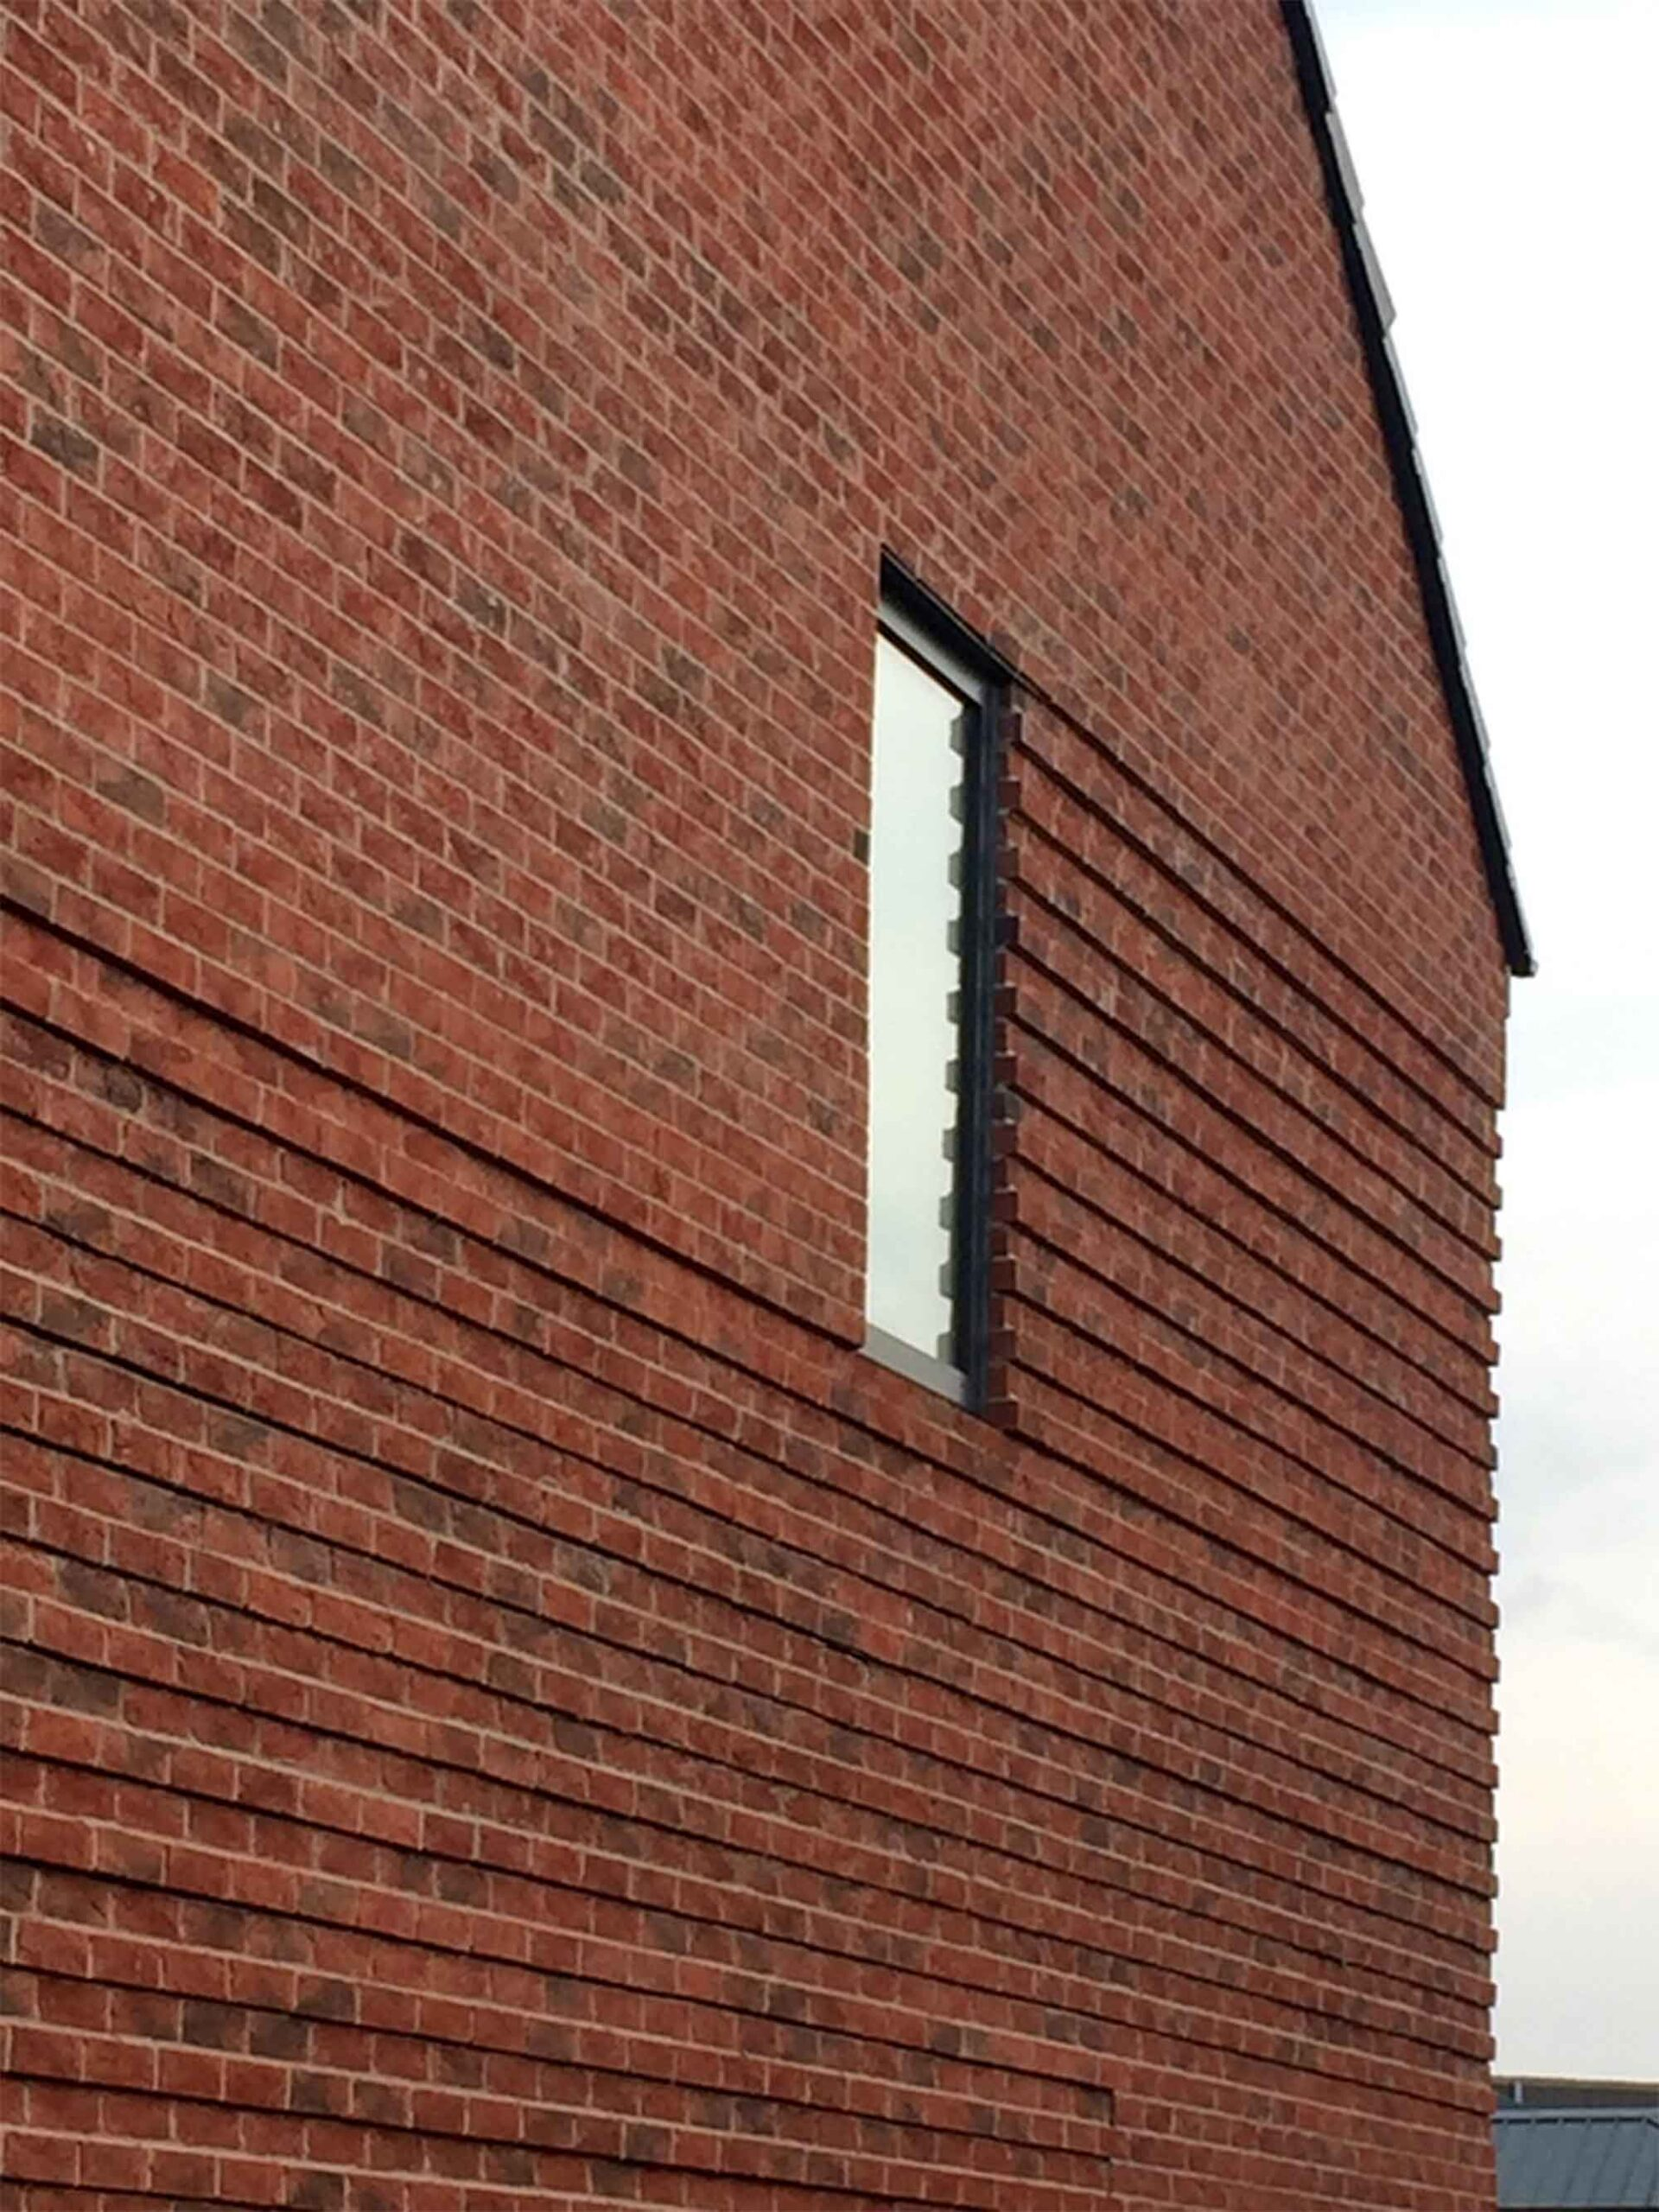 taylor-wimpey-openstudio-architects-brickwork-detail